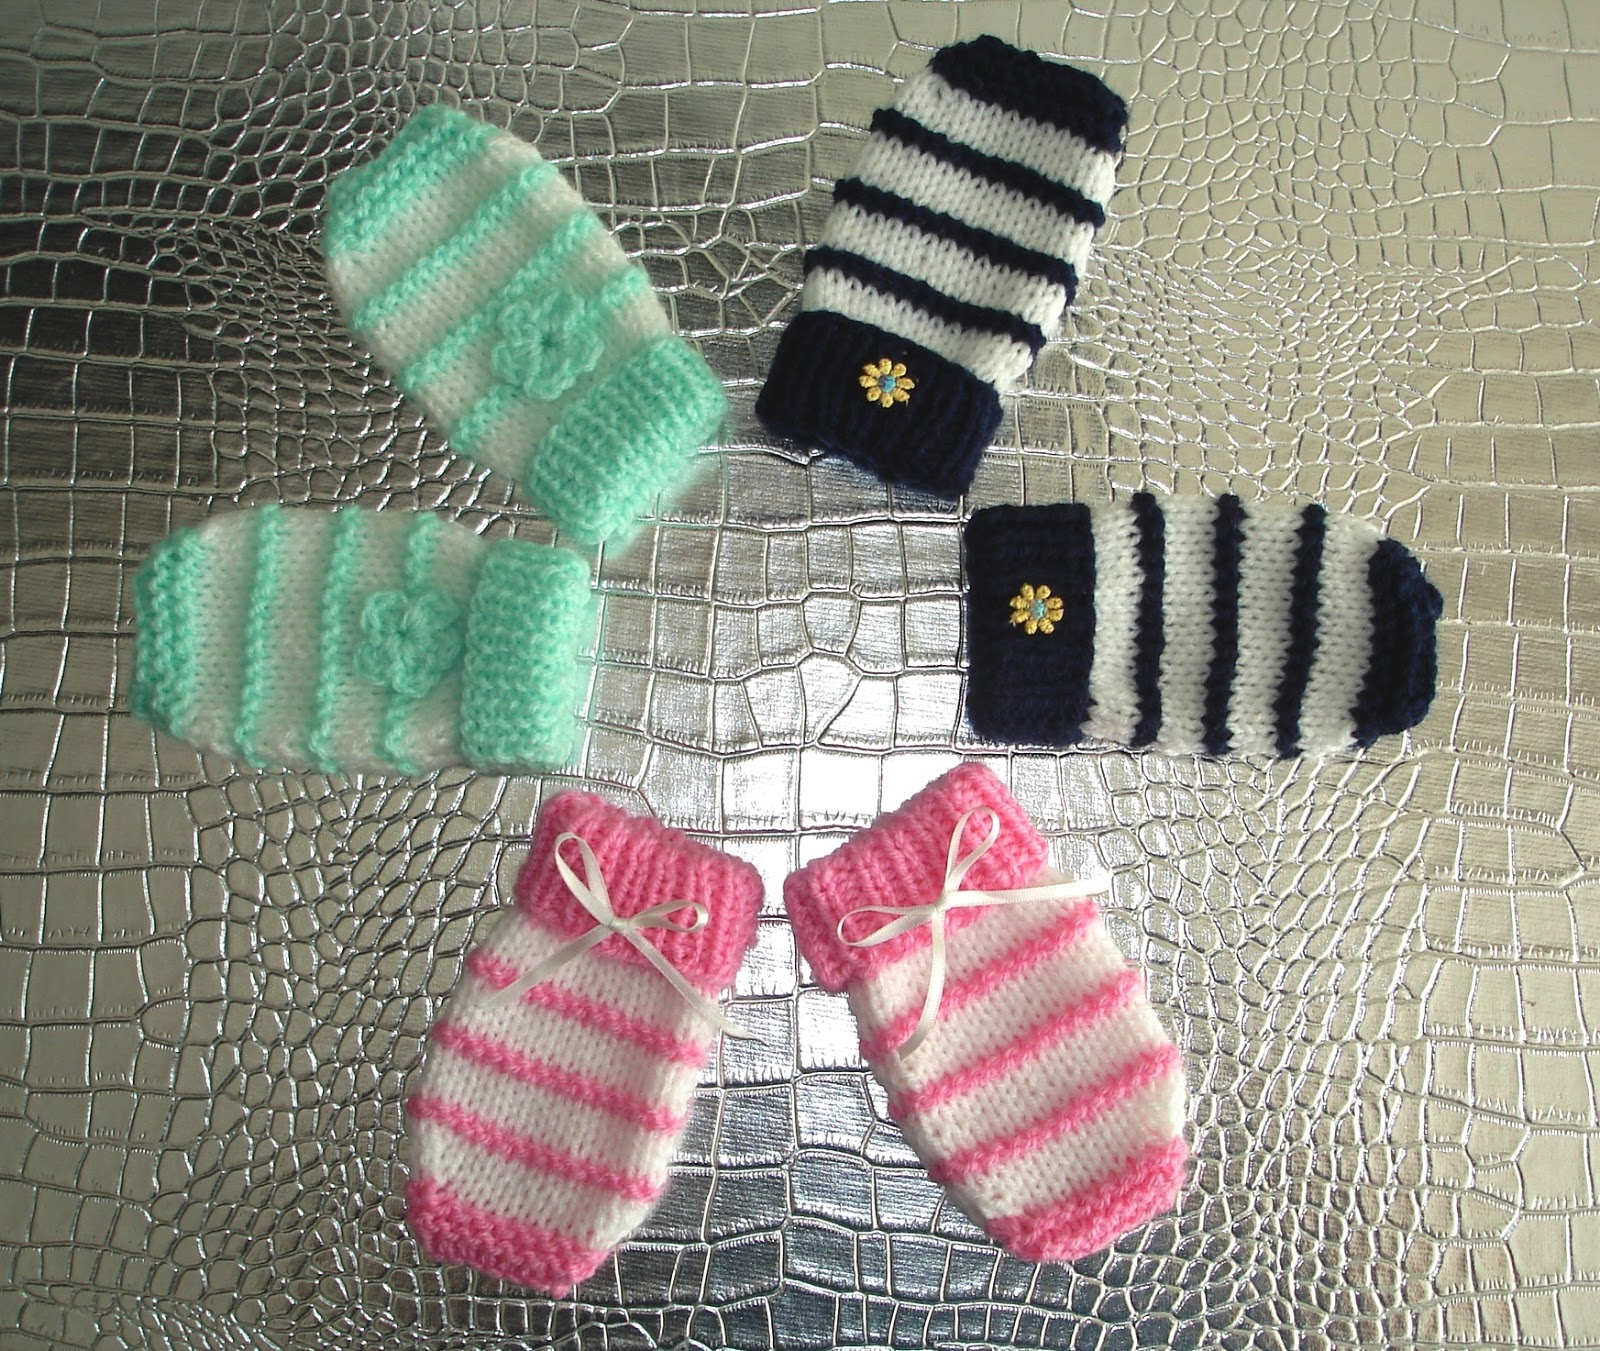 Knitting Pattern For Baby Hat And Mittens : mariannas lazy daisy days: Garter Stitch Ridge Baby Mittens